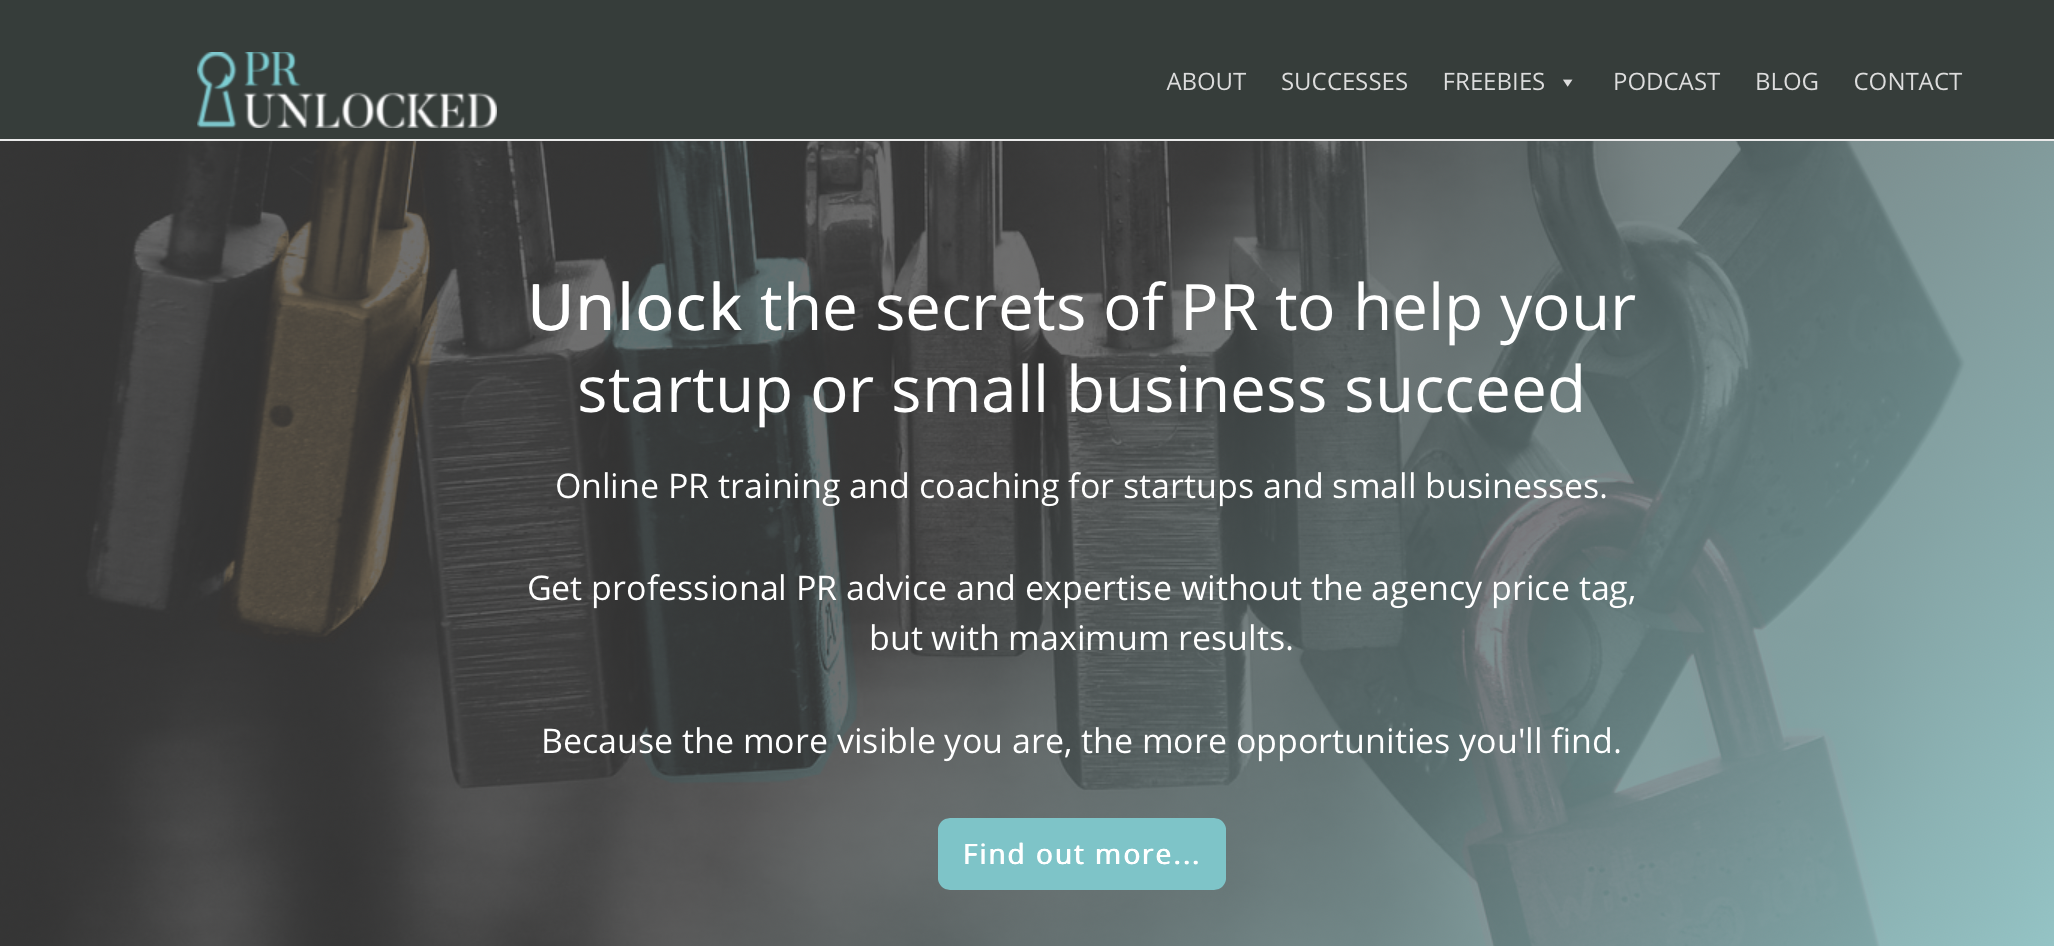 PR Unlocked online PR training for small businesses